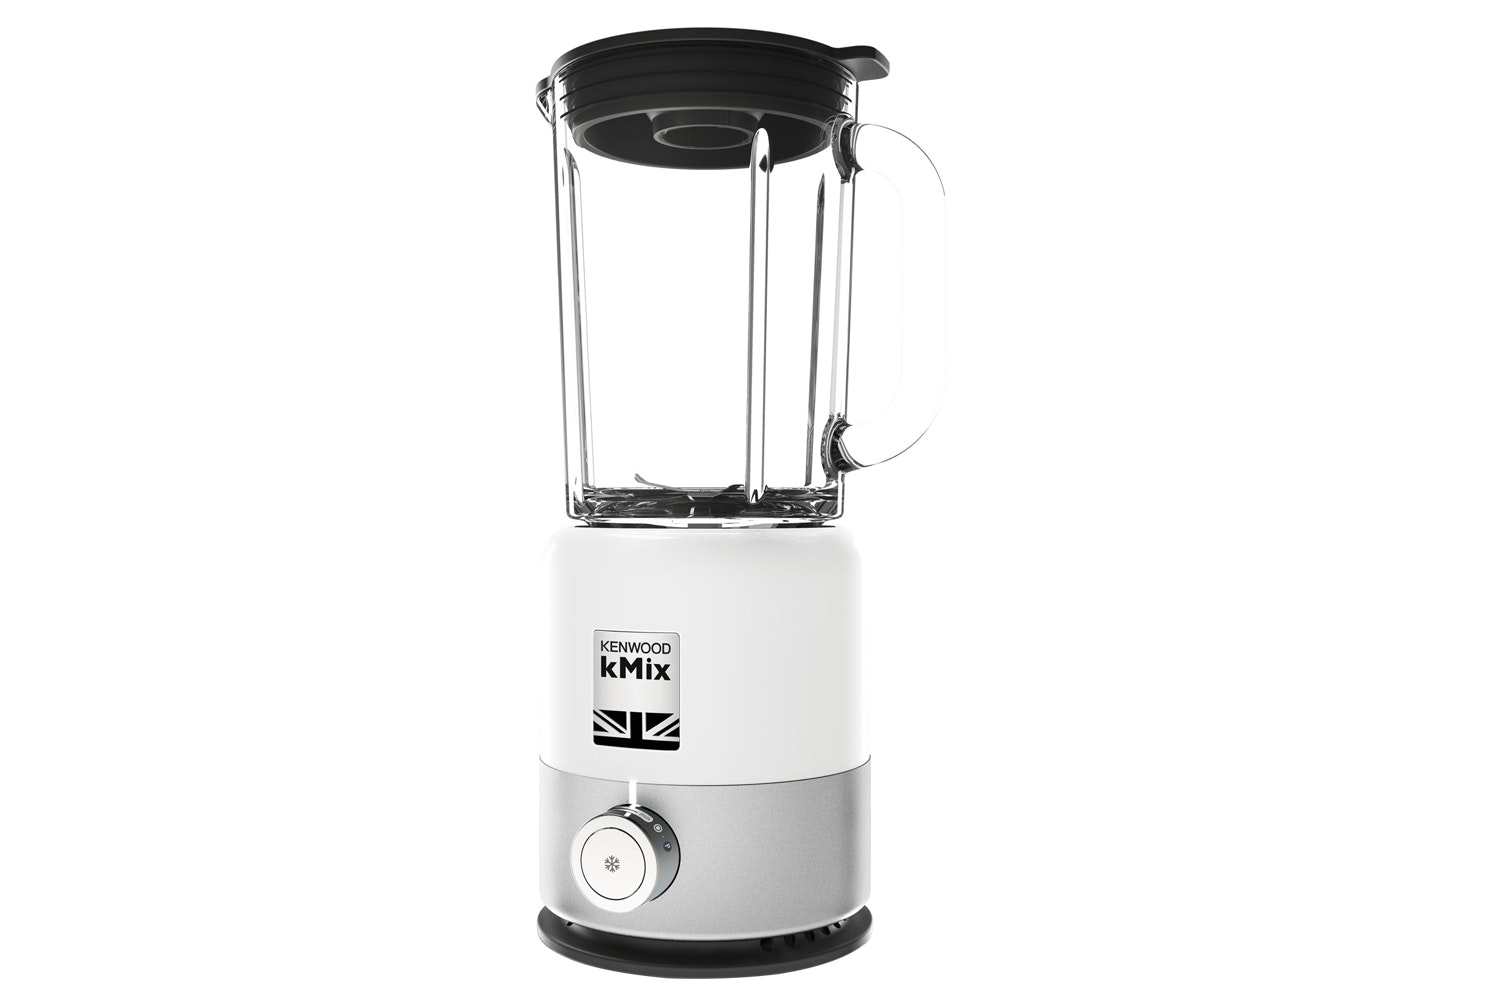 Kenwood kMix Blender | BLX750WH